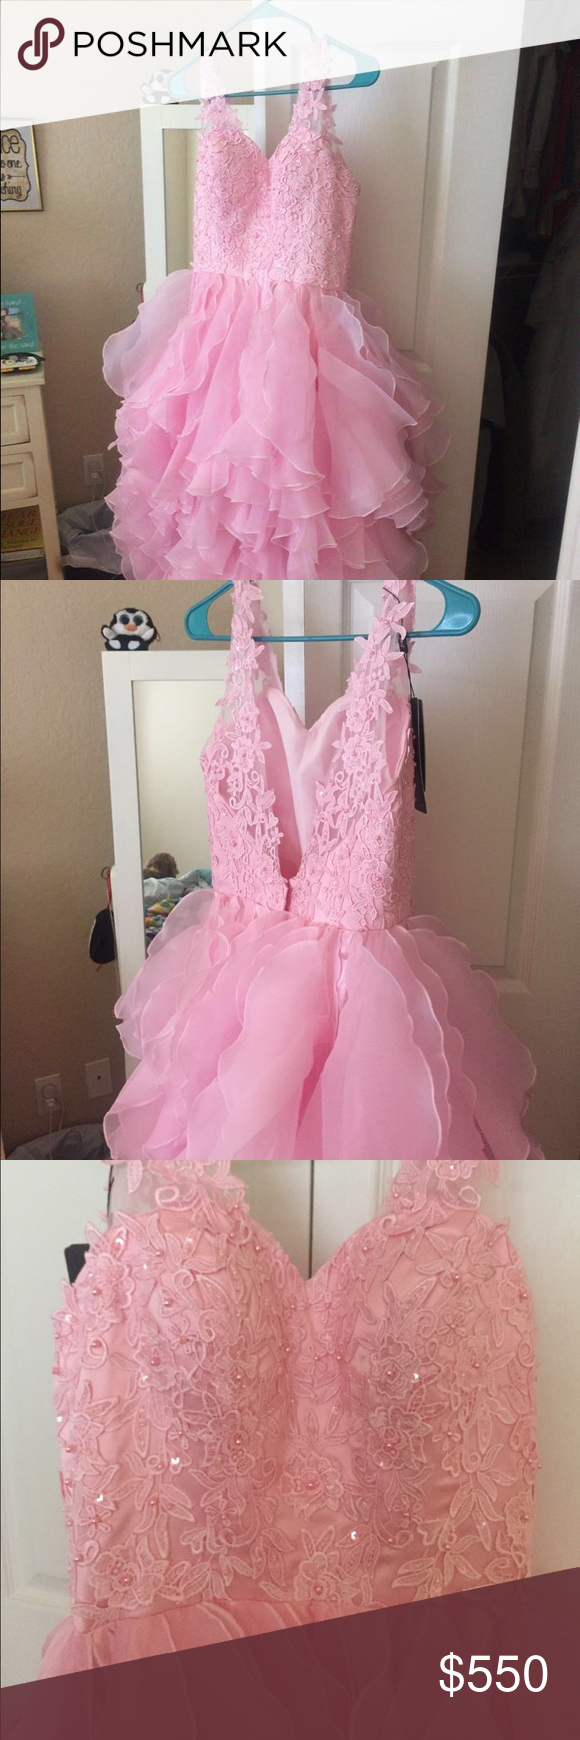 Last chance price firm prom dress pink nwt size never